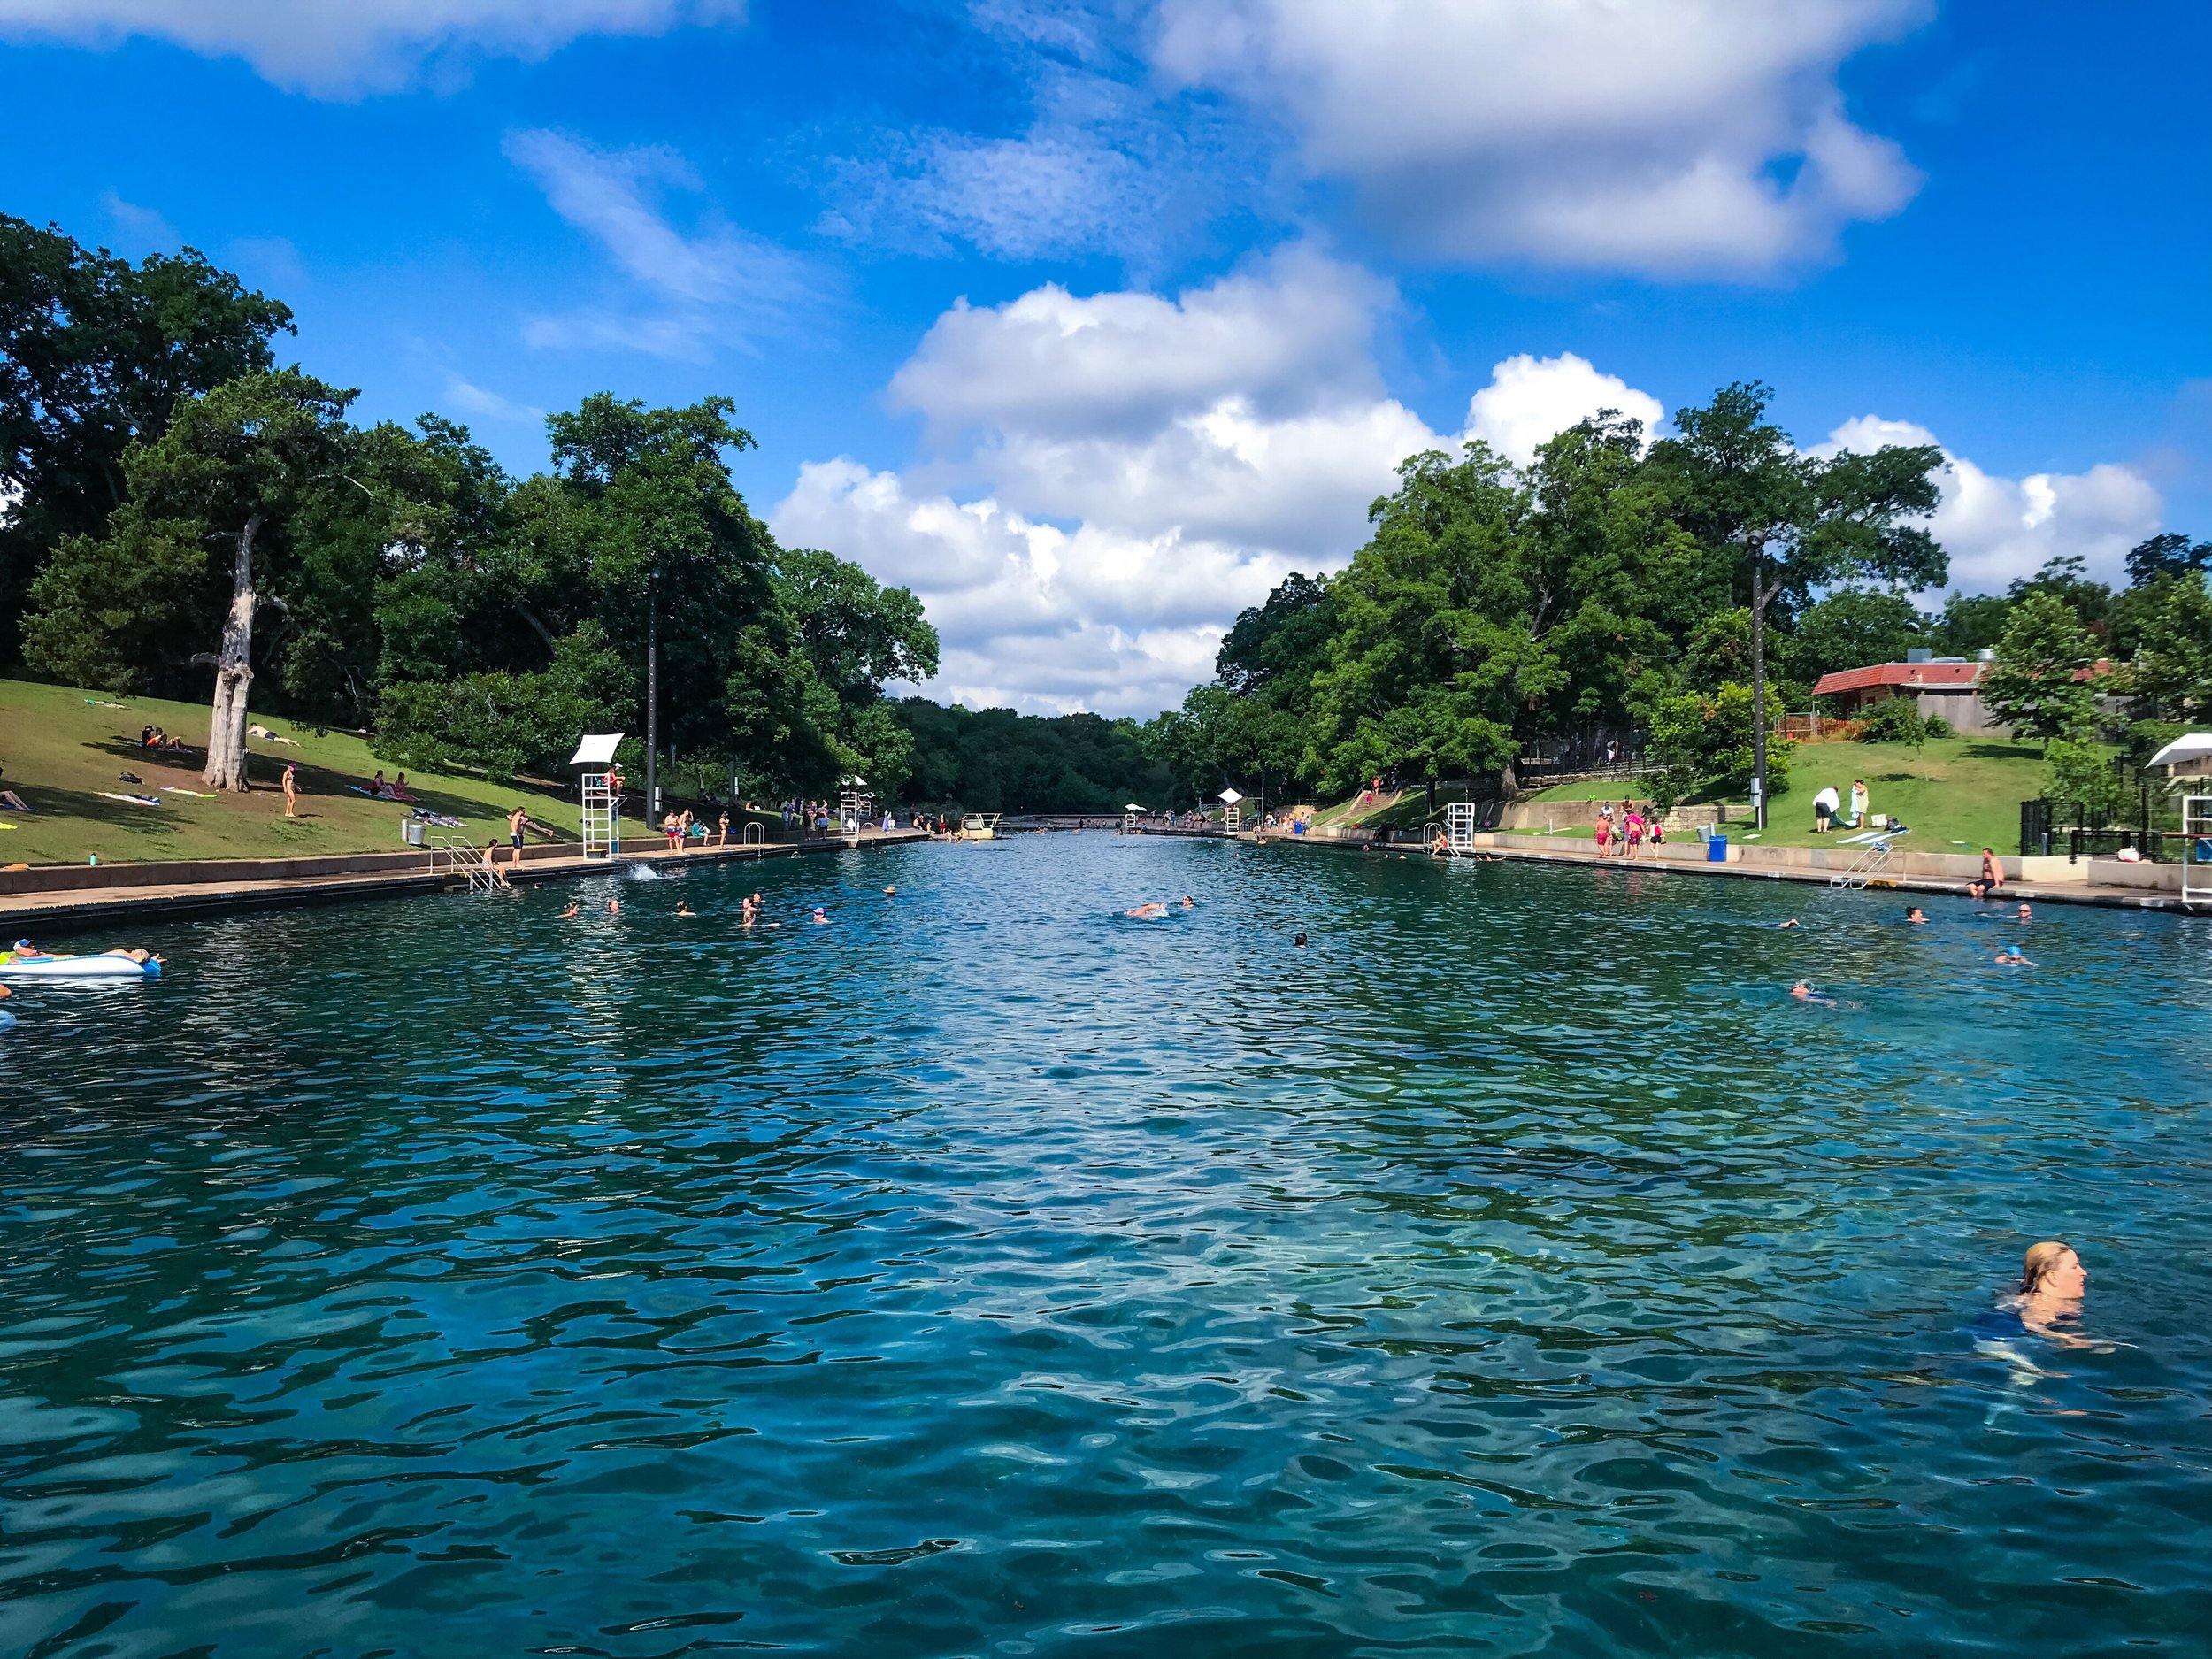 6. Take a dip at Barton Springs - Go enjoy an outdoor swimming pool that is fed by a nearby natural spring. The water is crystal clear and it's great way to cool down on a hot Texas day.